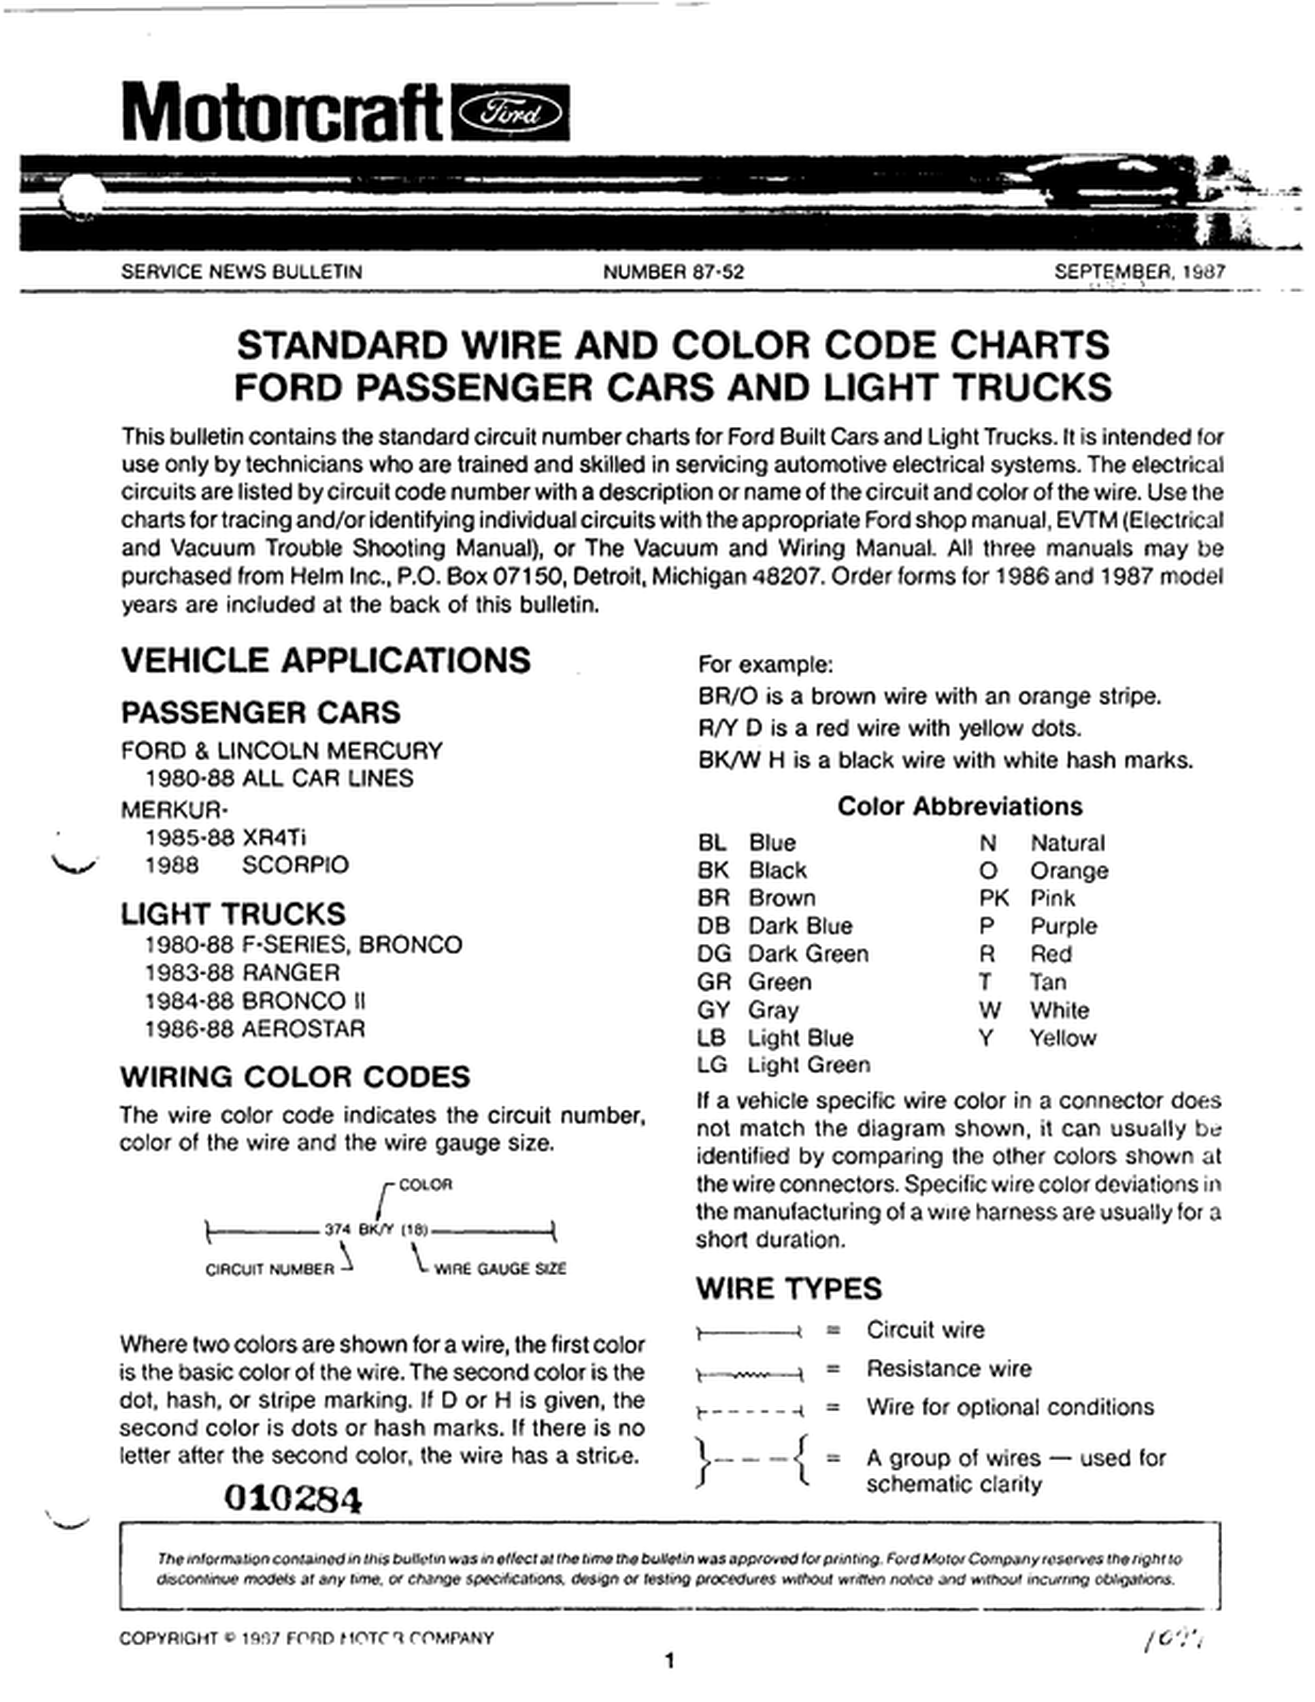 ford wiring color code book diagram schema ford truck wiring harness kits on nissan 300zx wiring color code [ 1315 x 1702 Pixel ]